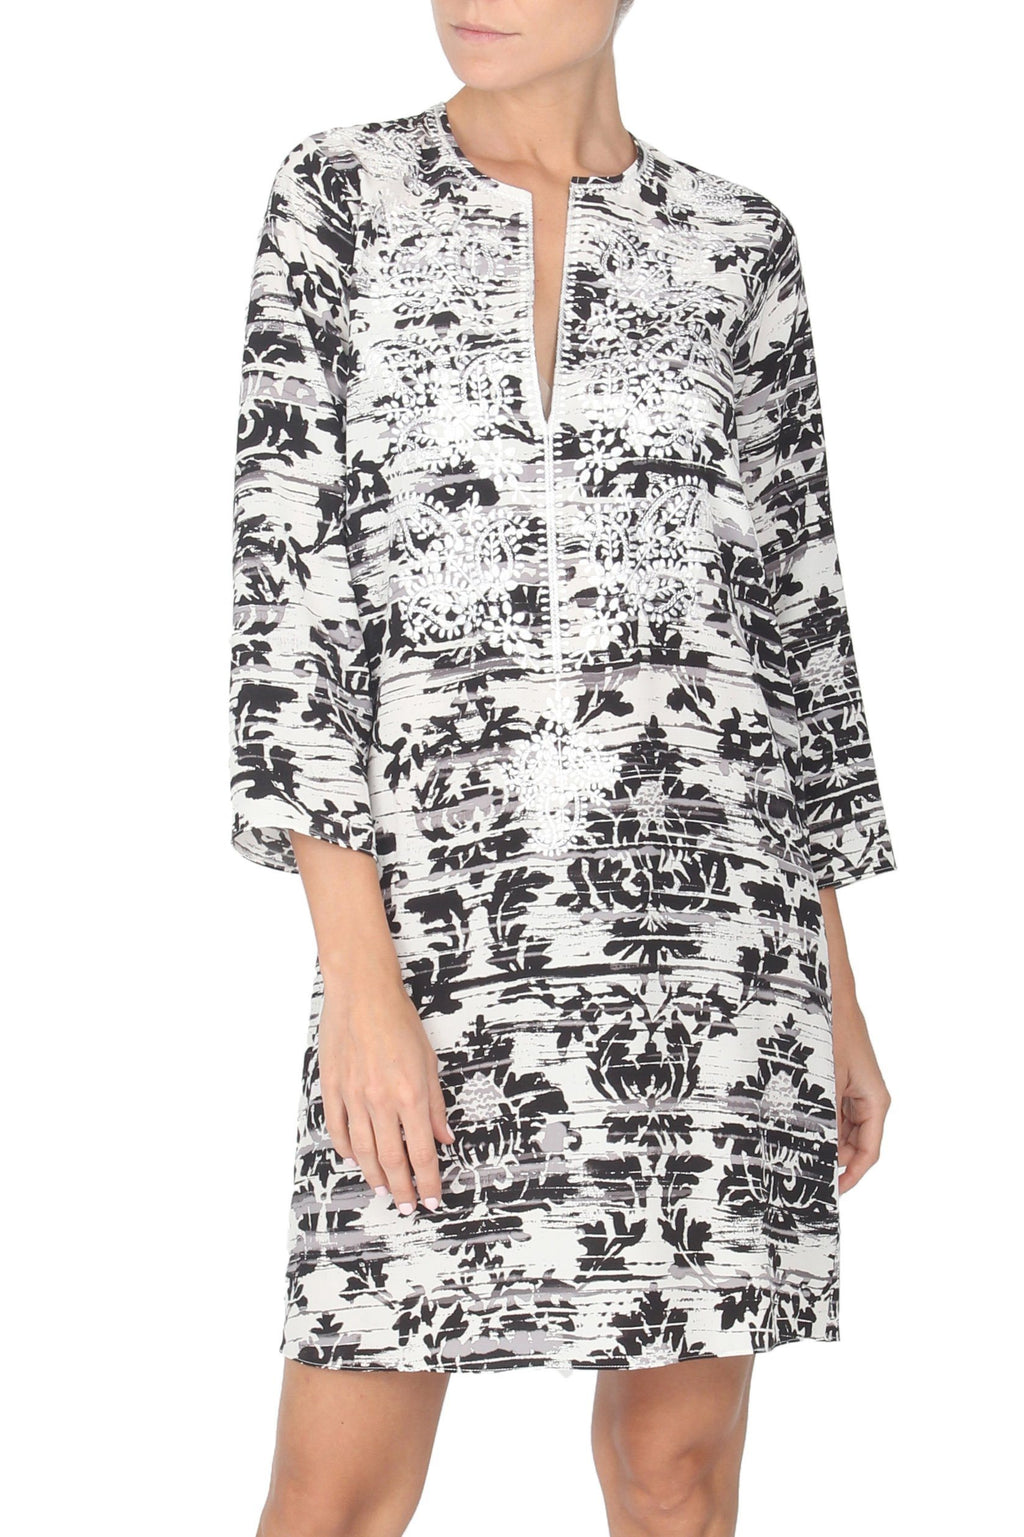 Embroidered Silk Crepe de Chine Printed Dress Tunics Marie France Van Damme 0 Acanthe Silver